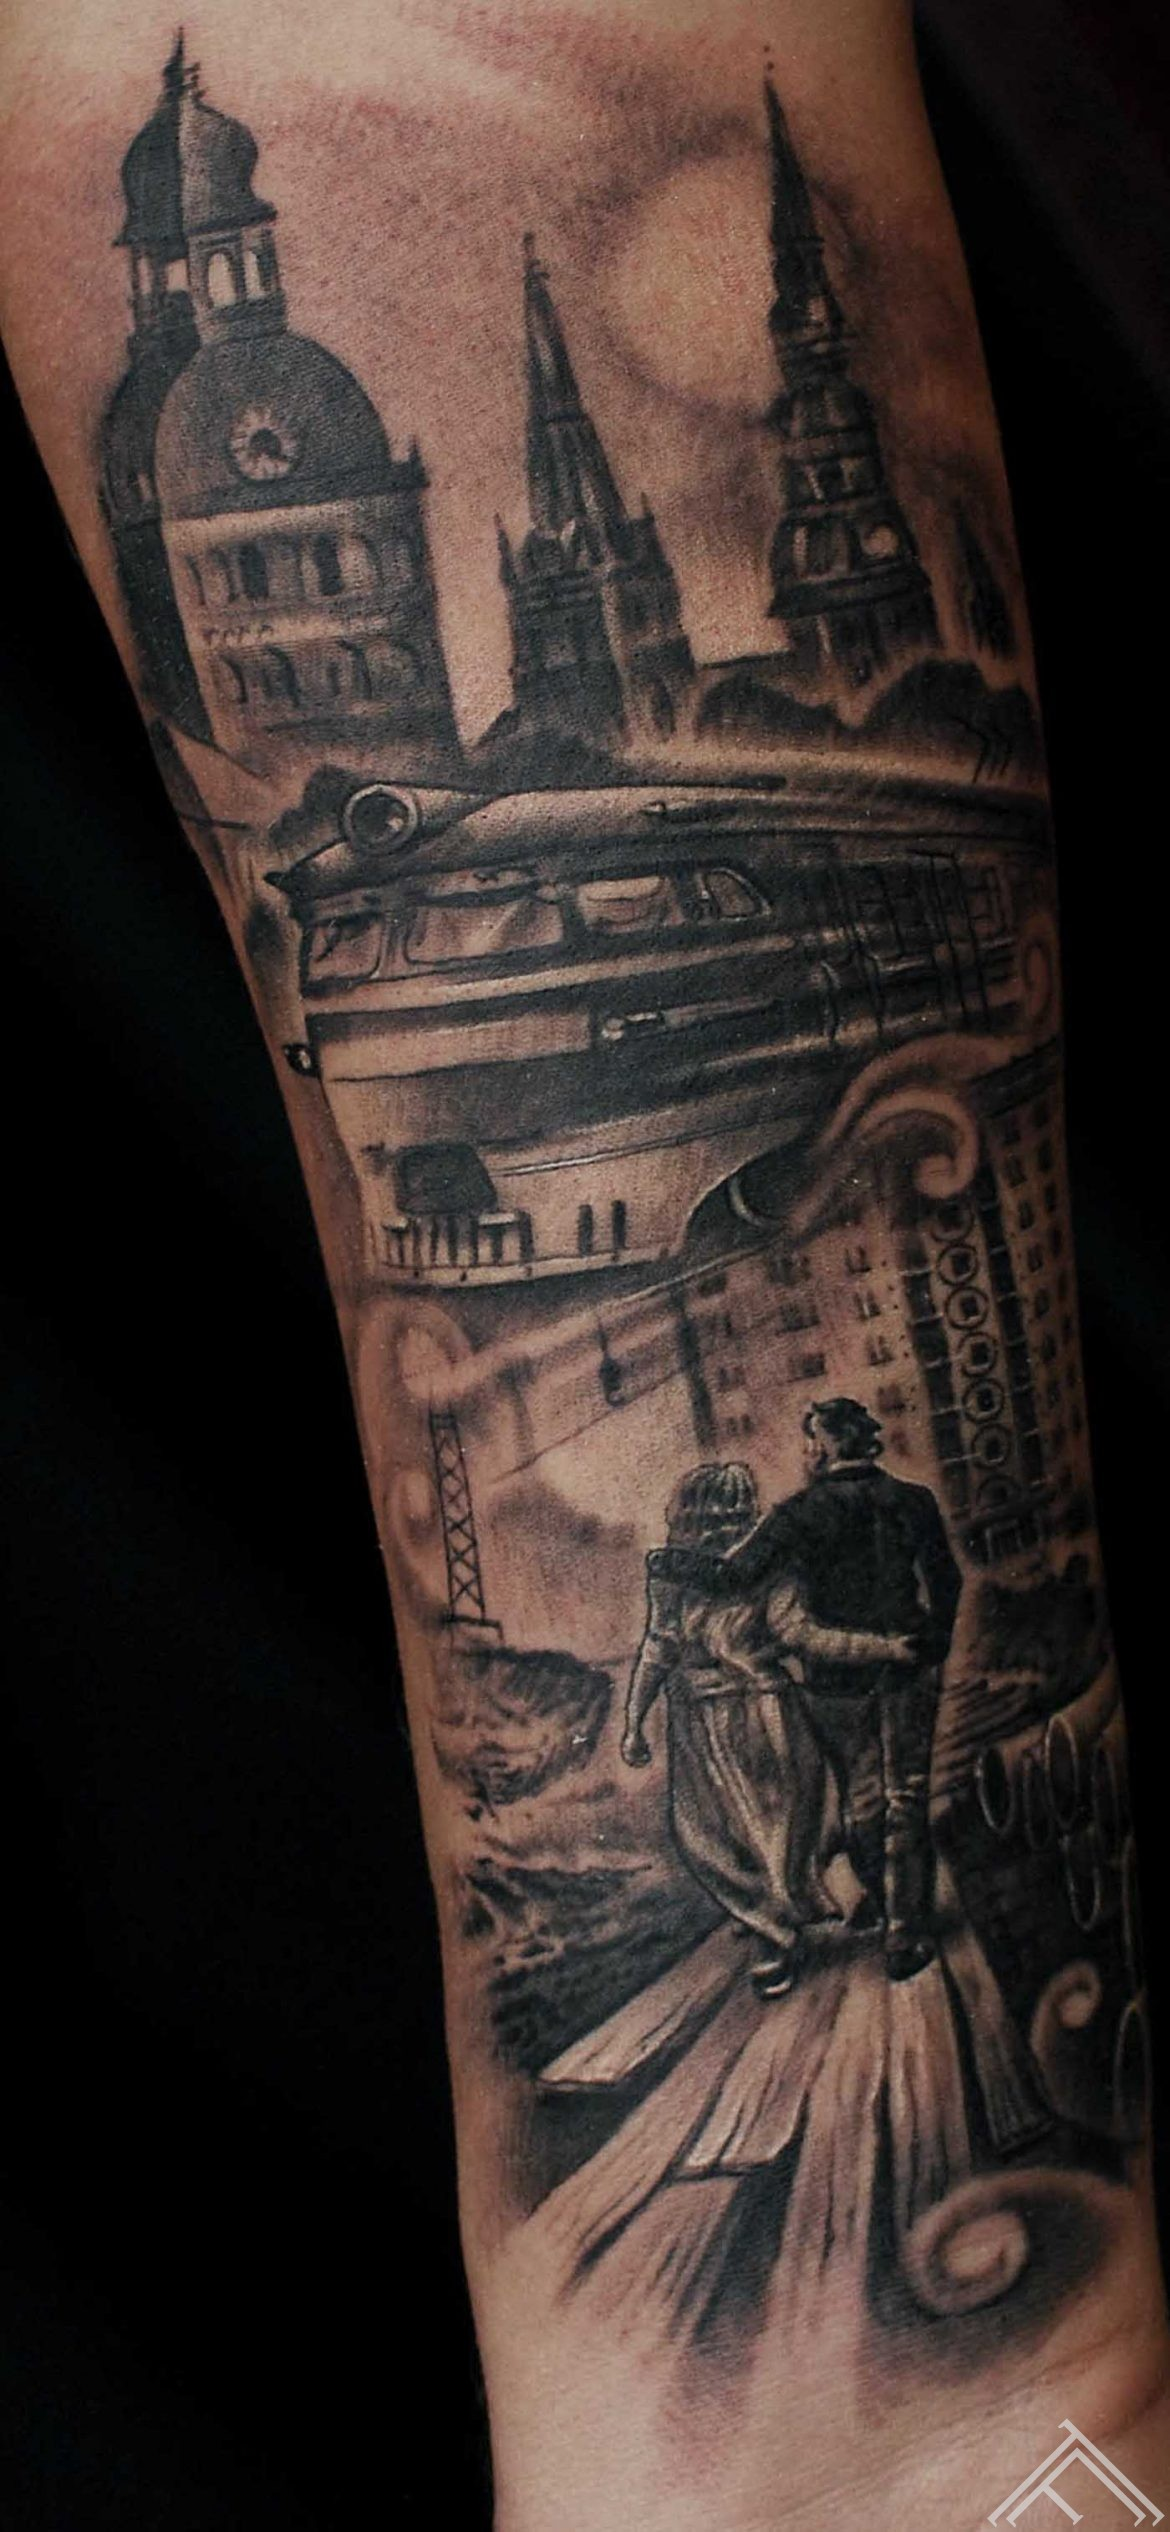 memories_nostalgia_city_riga_latvia_old_train_tattoo_marispavlo_tattoofrequency